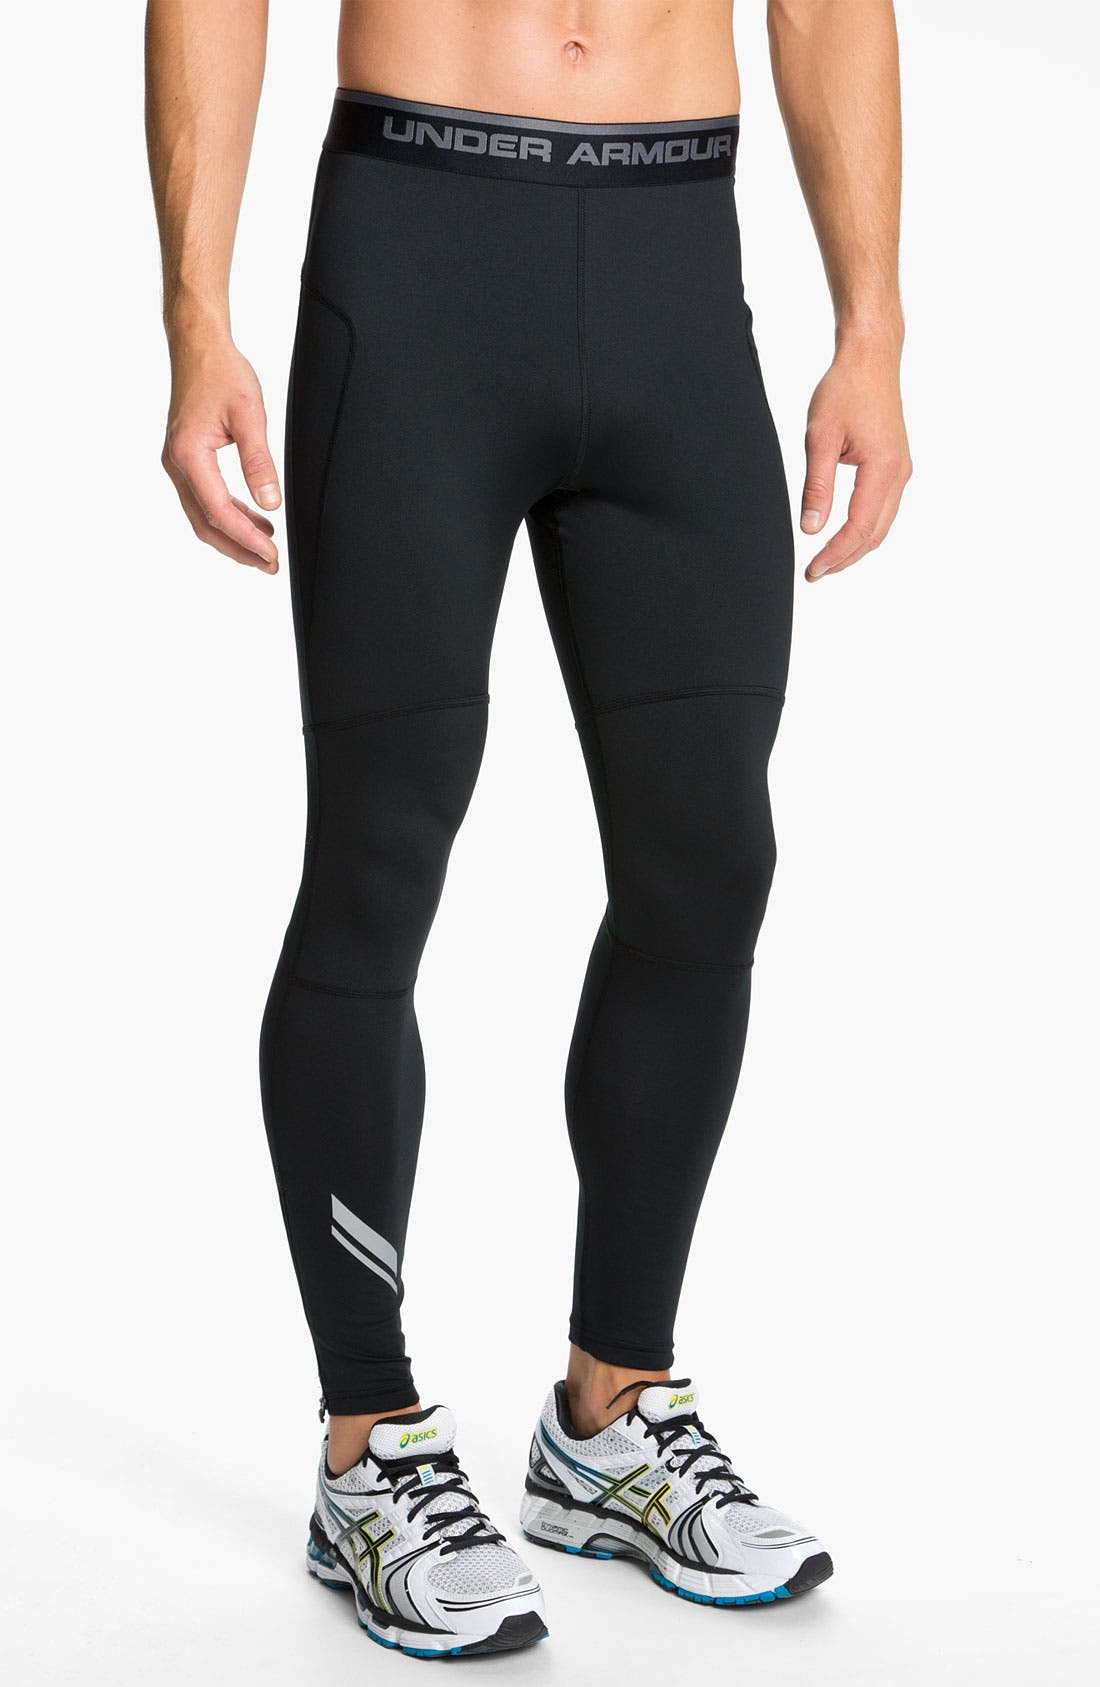 Alternate Image 1 Selected - Under Armour 'Run' ColdGear® Running Leggings (Online Exclusive)